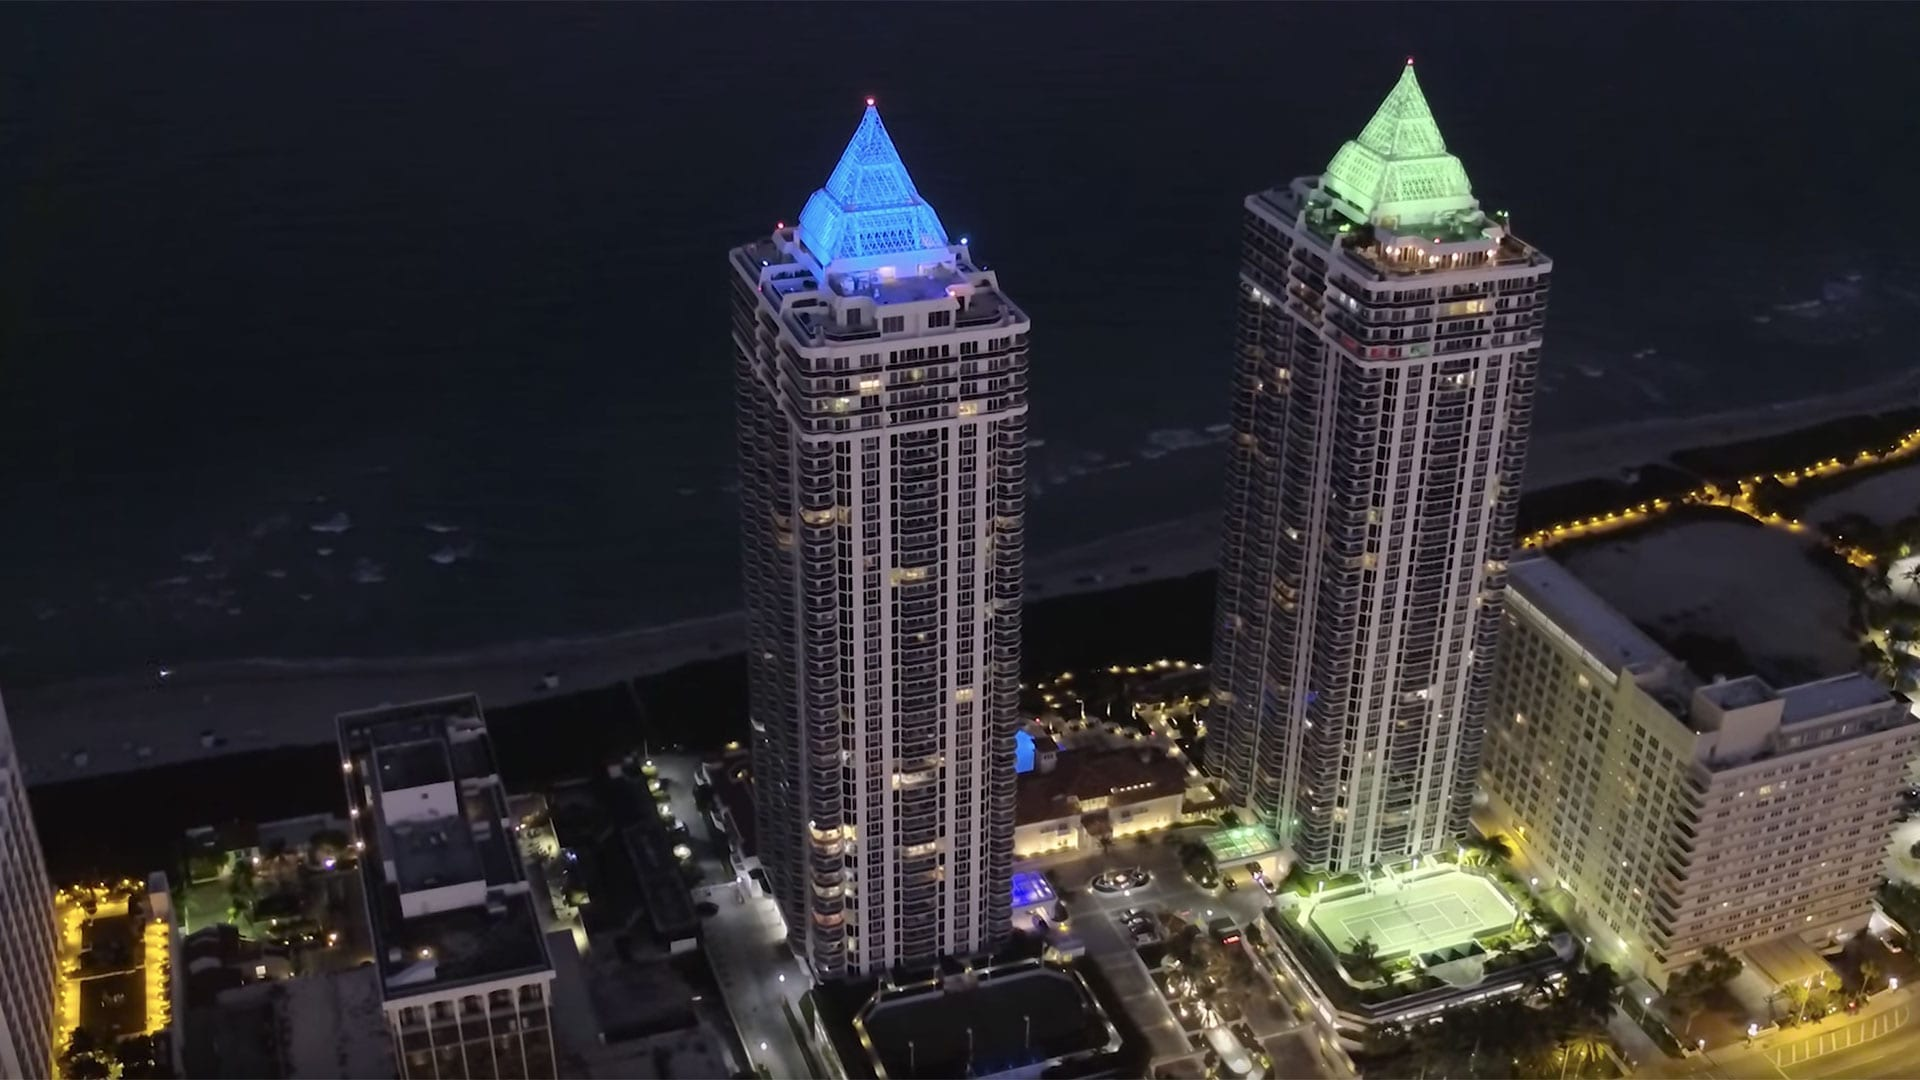 Blue & Green Diamond Luxury Condos - Designed by Swedroe Architecture - Miami Architect